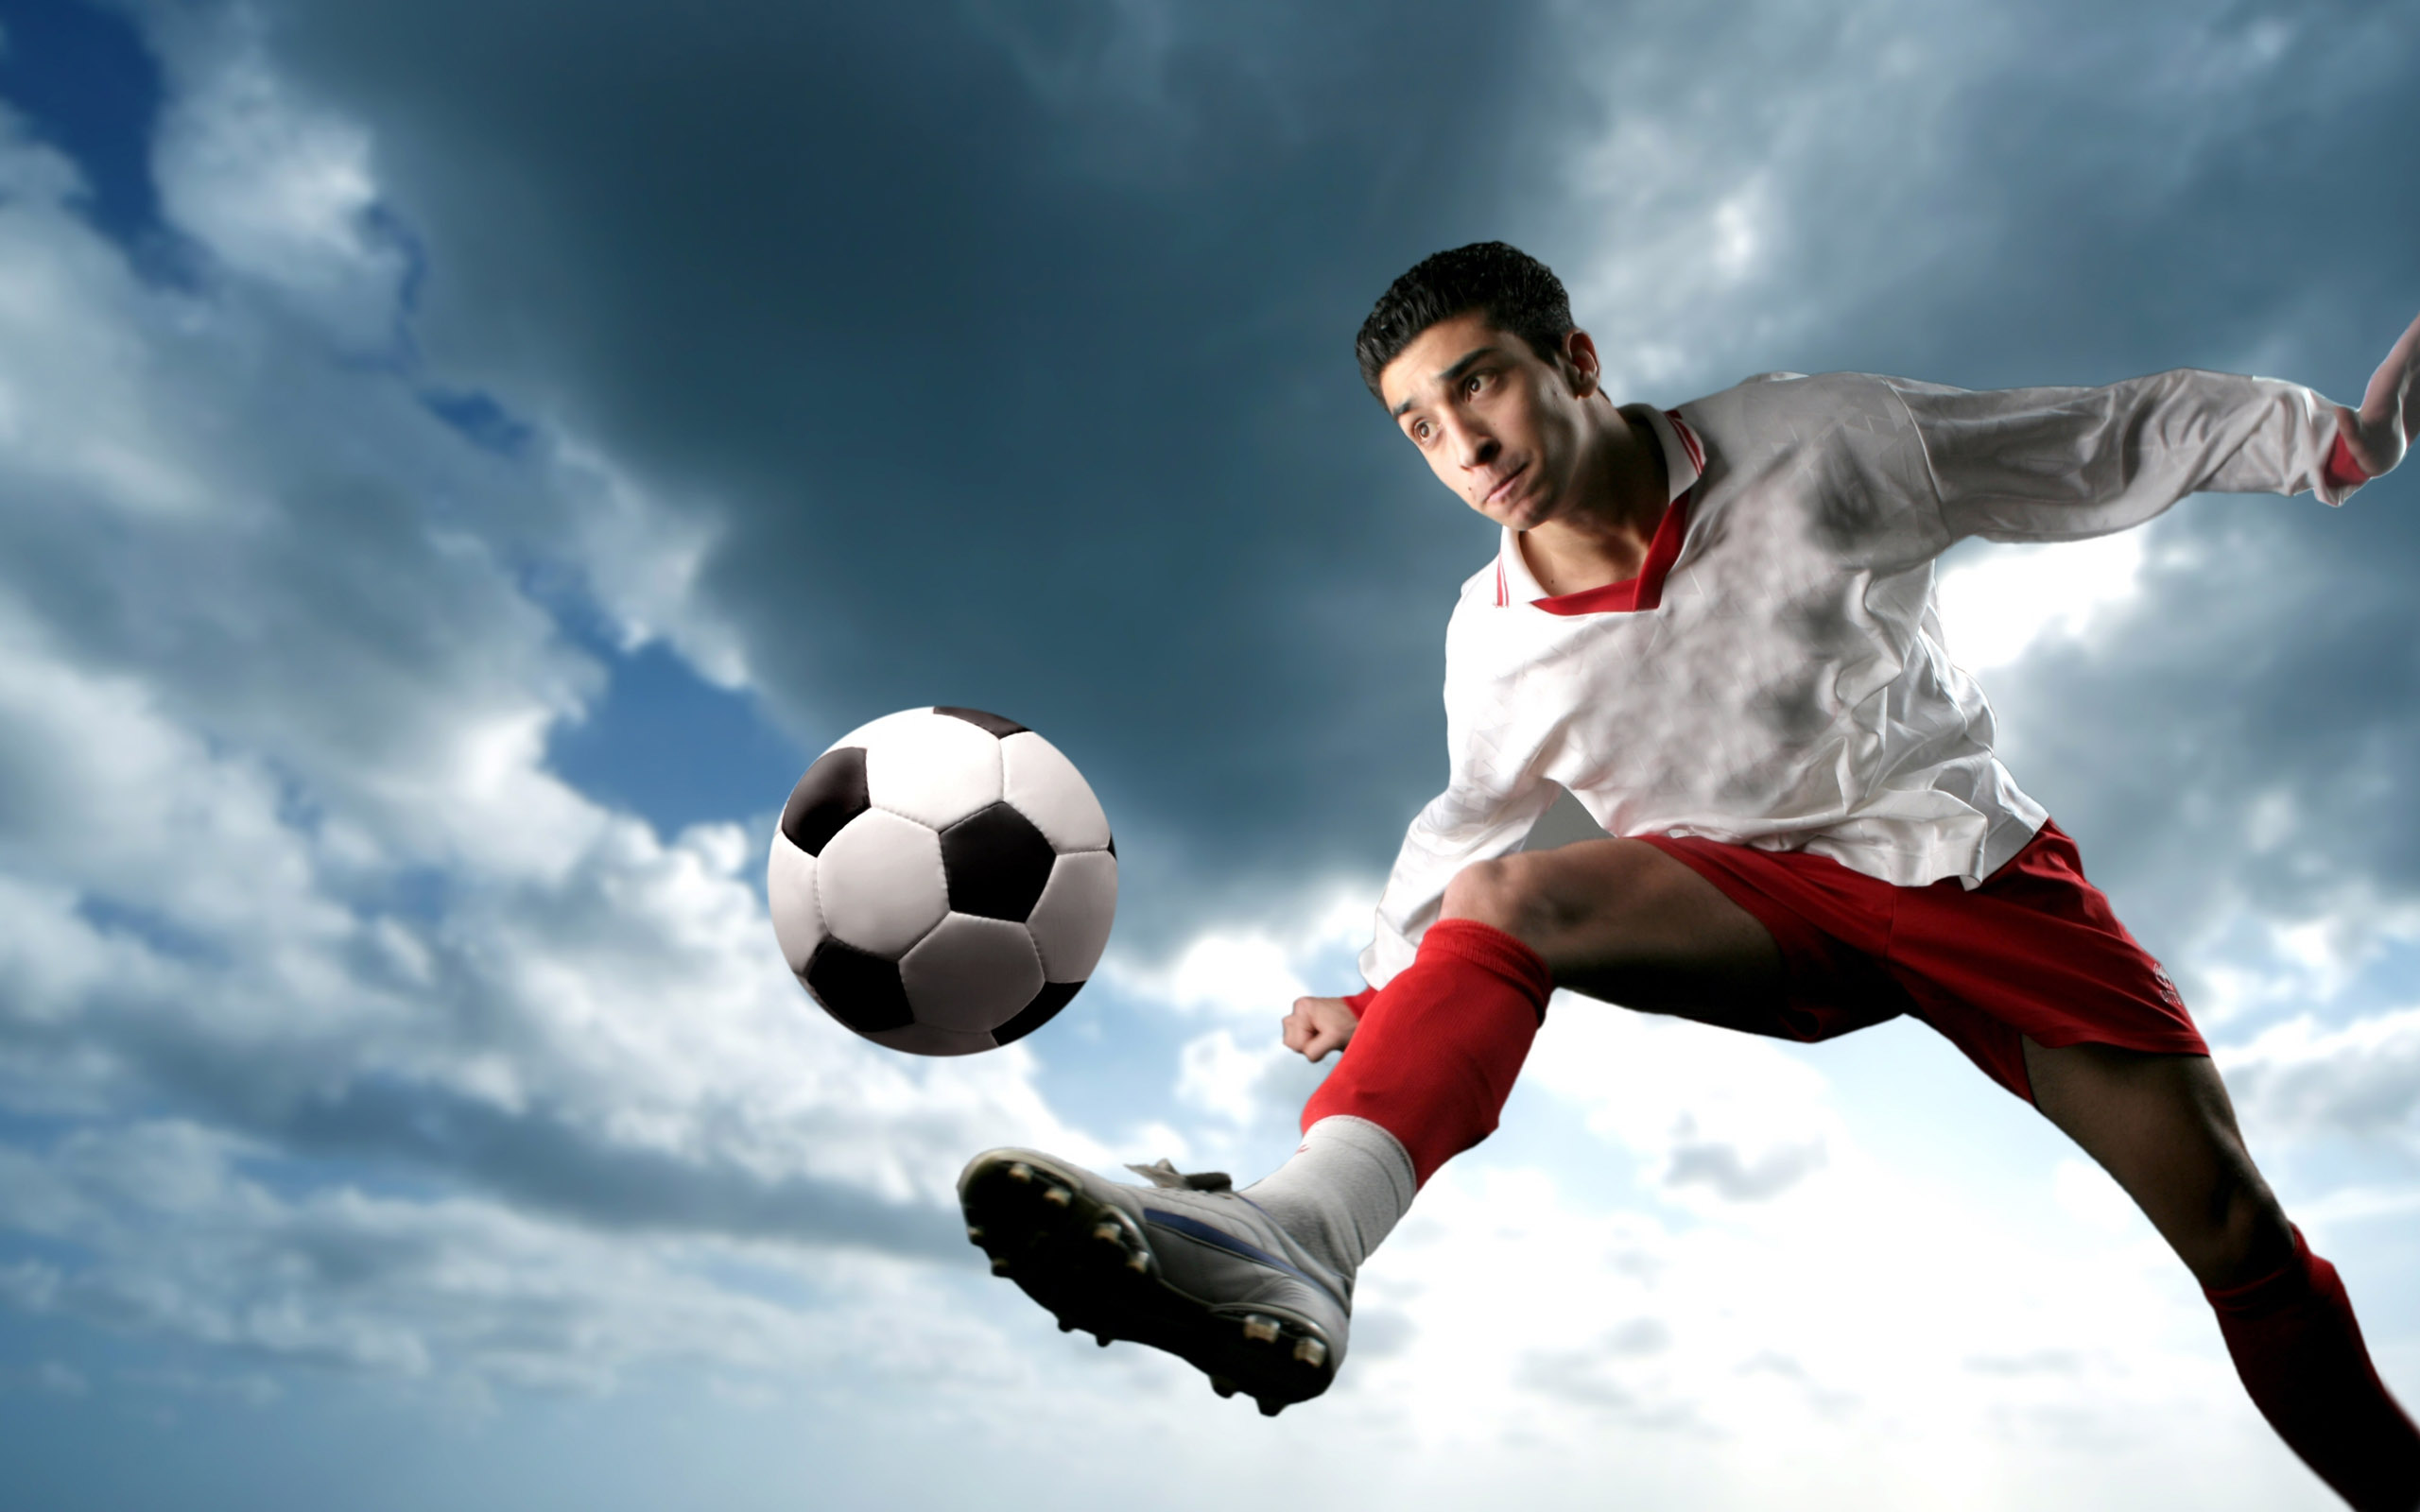 soccer desktop backgrounds soccer desktop backgrounds Desktop 2560x1600